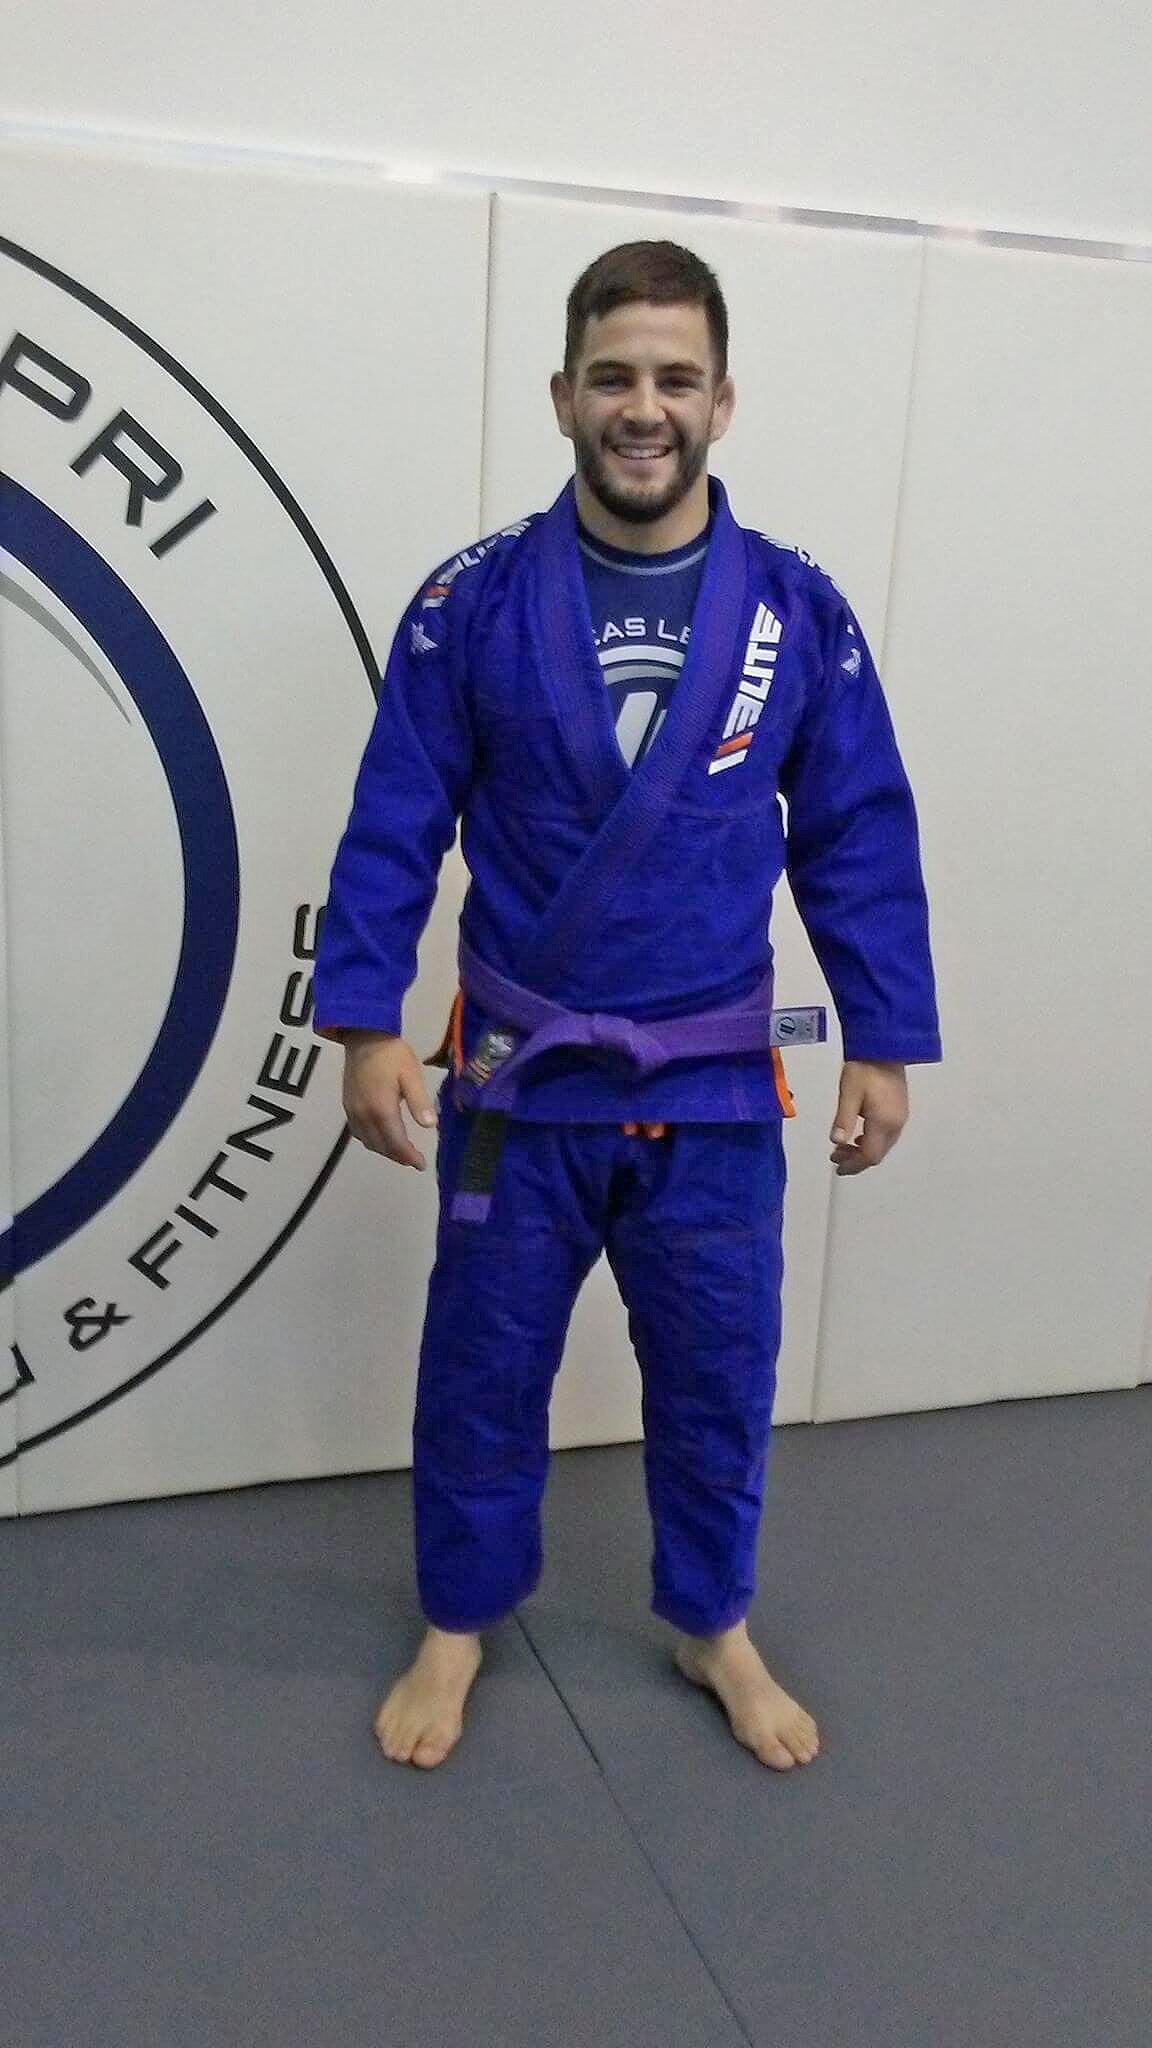 Elite Sports Team Elite Bjj Fighter  Brad Barnett Image3